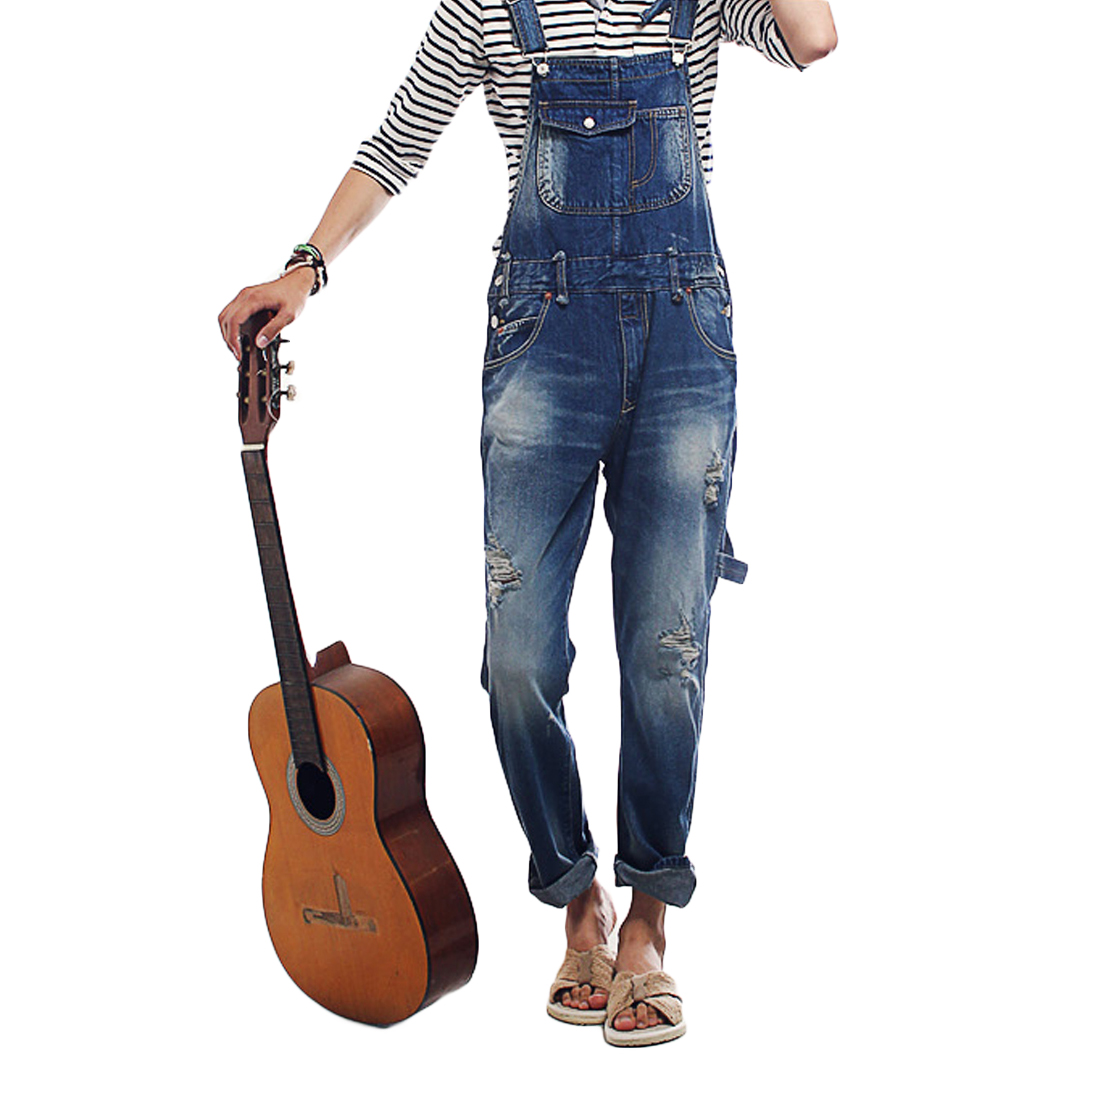 Retro Men's Holes Trousers Pants Suspenders Slim Destroyed Long Pants Overalls Jeans Pocket Classic Denims Ripped Jumpsuits Blue new mens skinny jean overalls blue suspenders multi pocket bib pants holes denim trousers size m 2xl